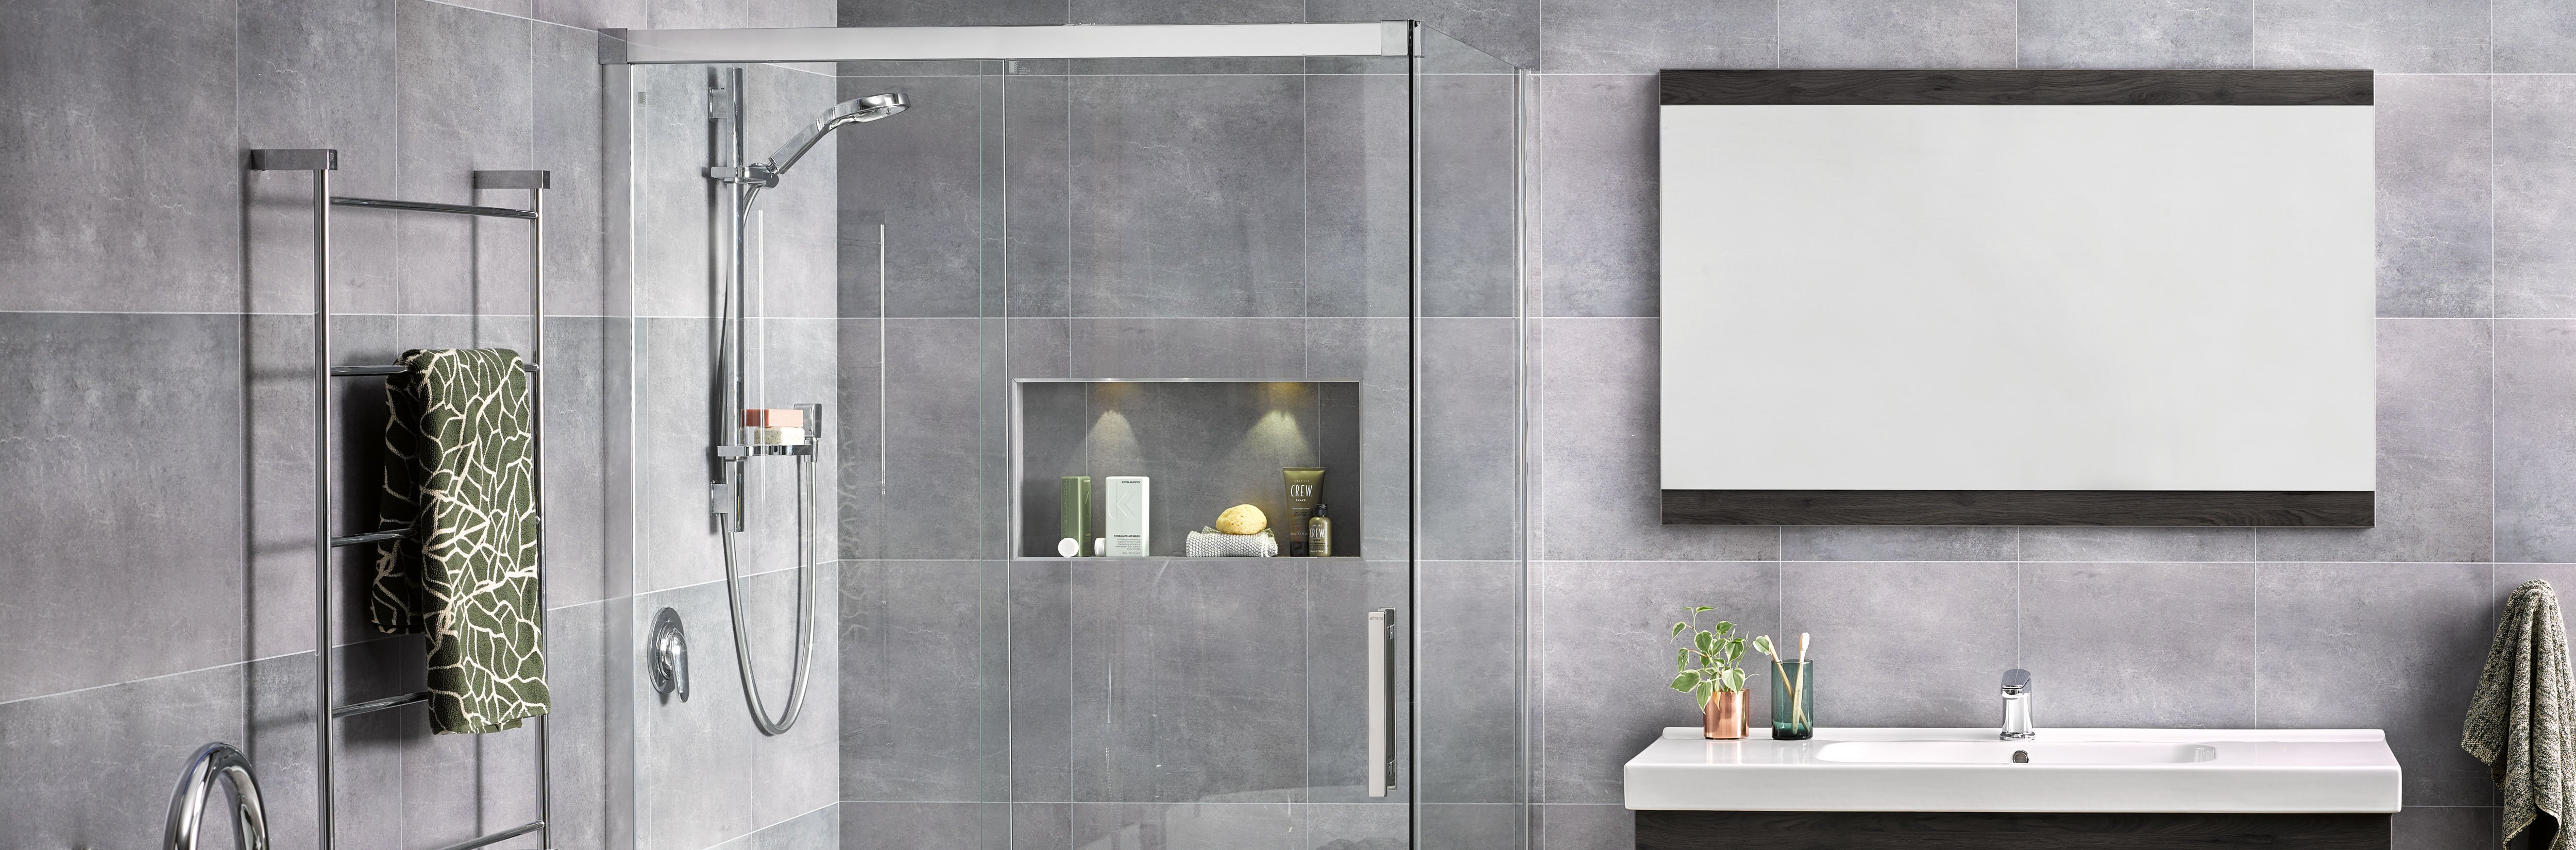 Bathroom Lights Nz athena bathrooms | bathroomware designed for new zealand homes